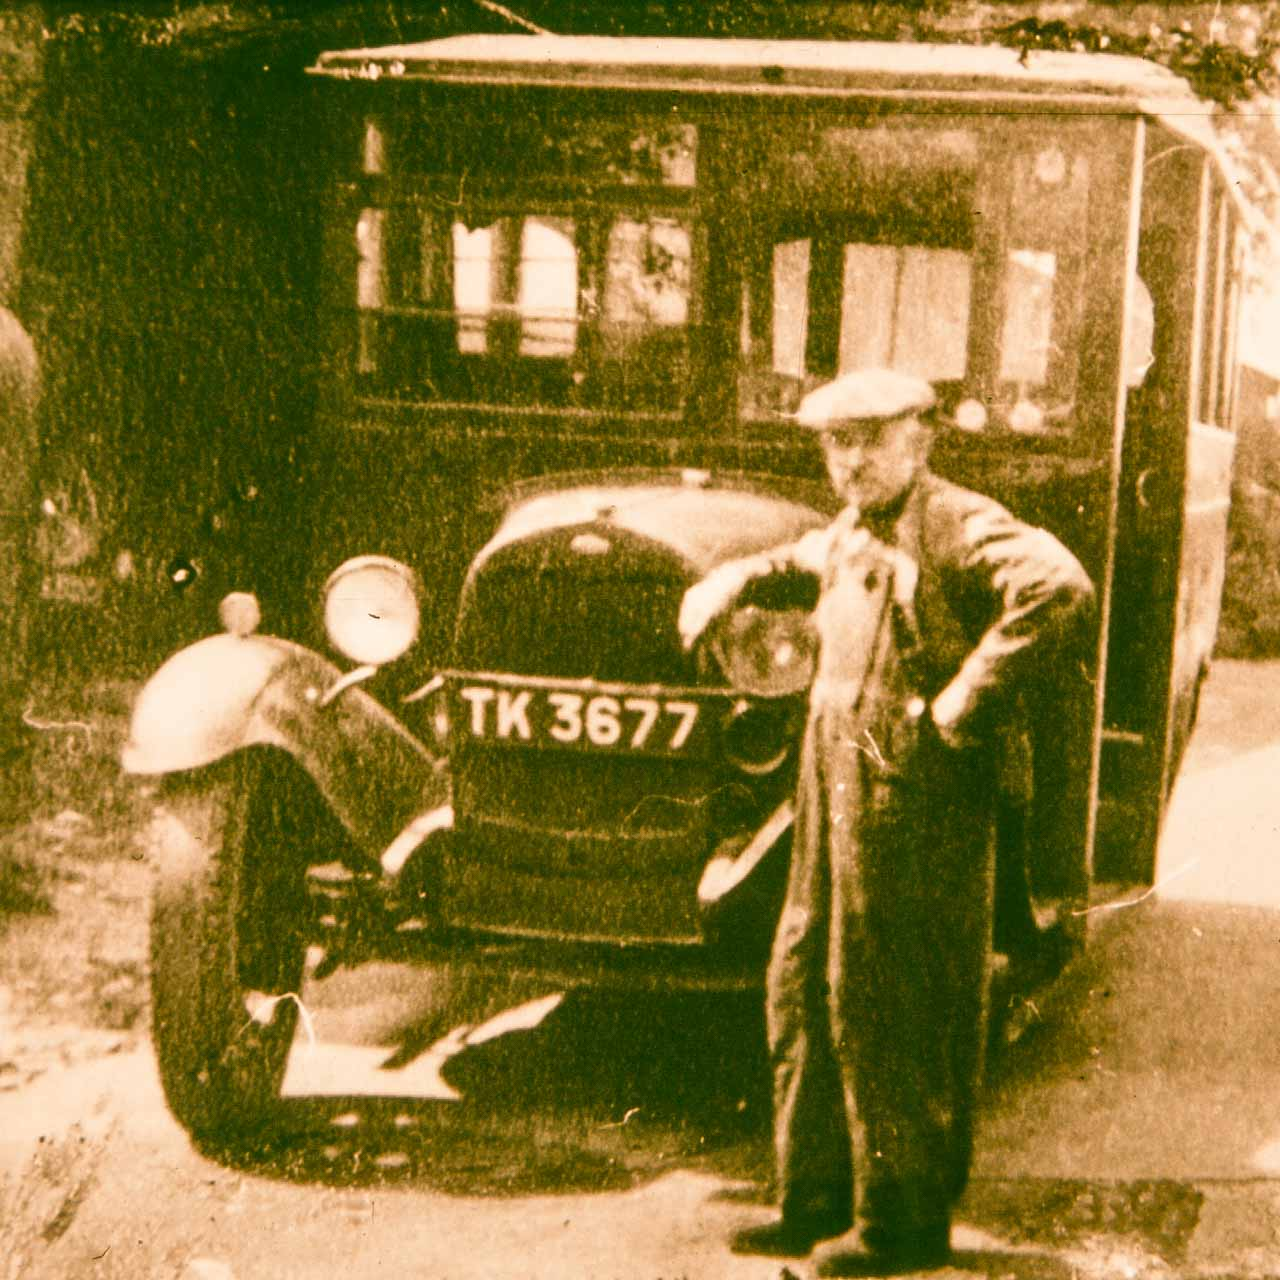 Alby and the 1929 Ford Model T 14 seater